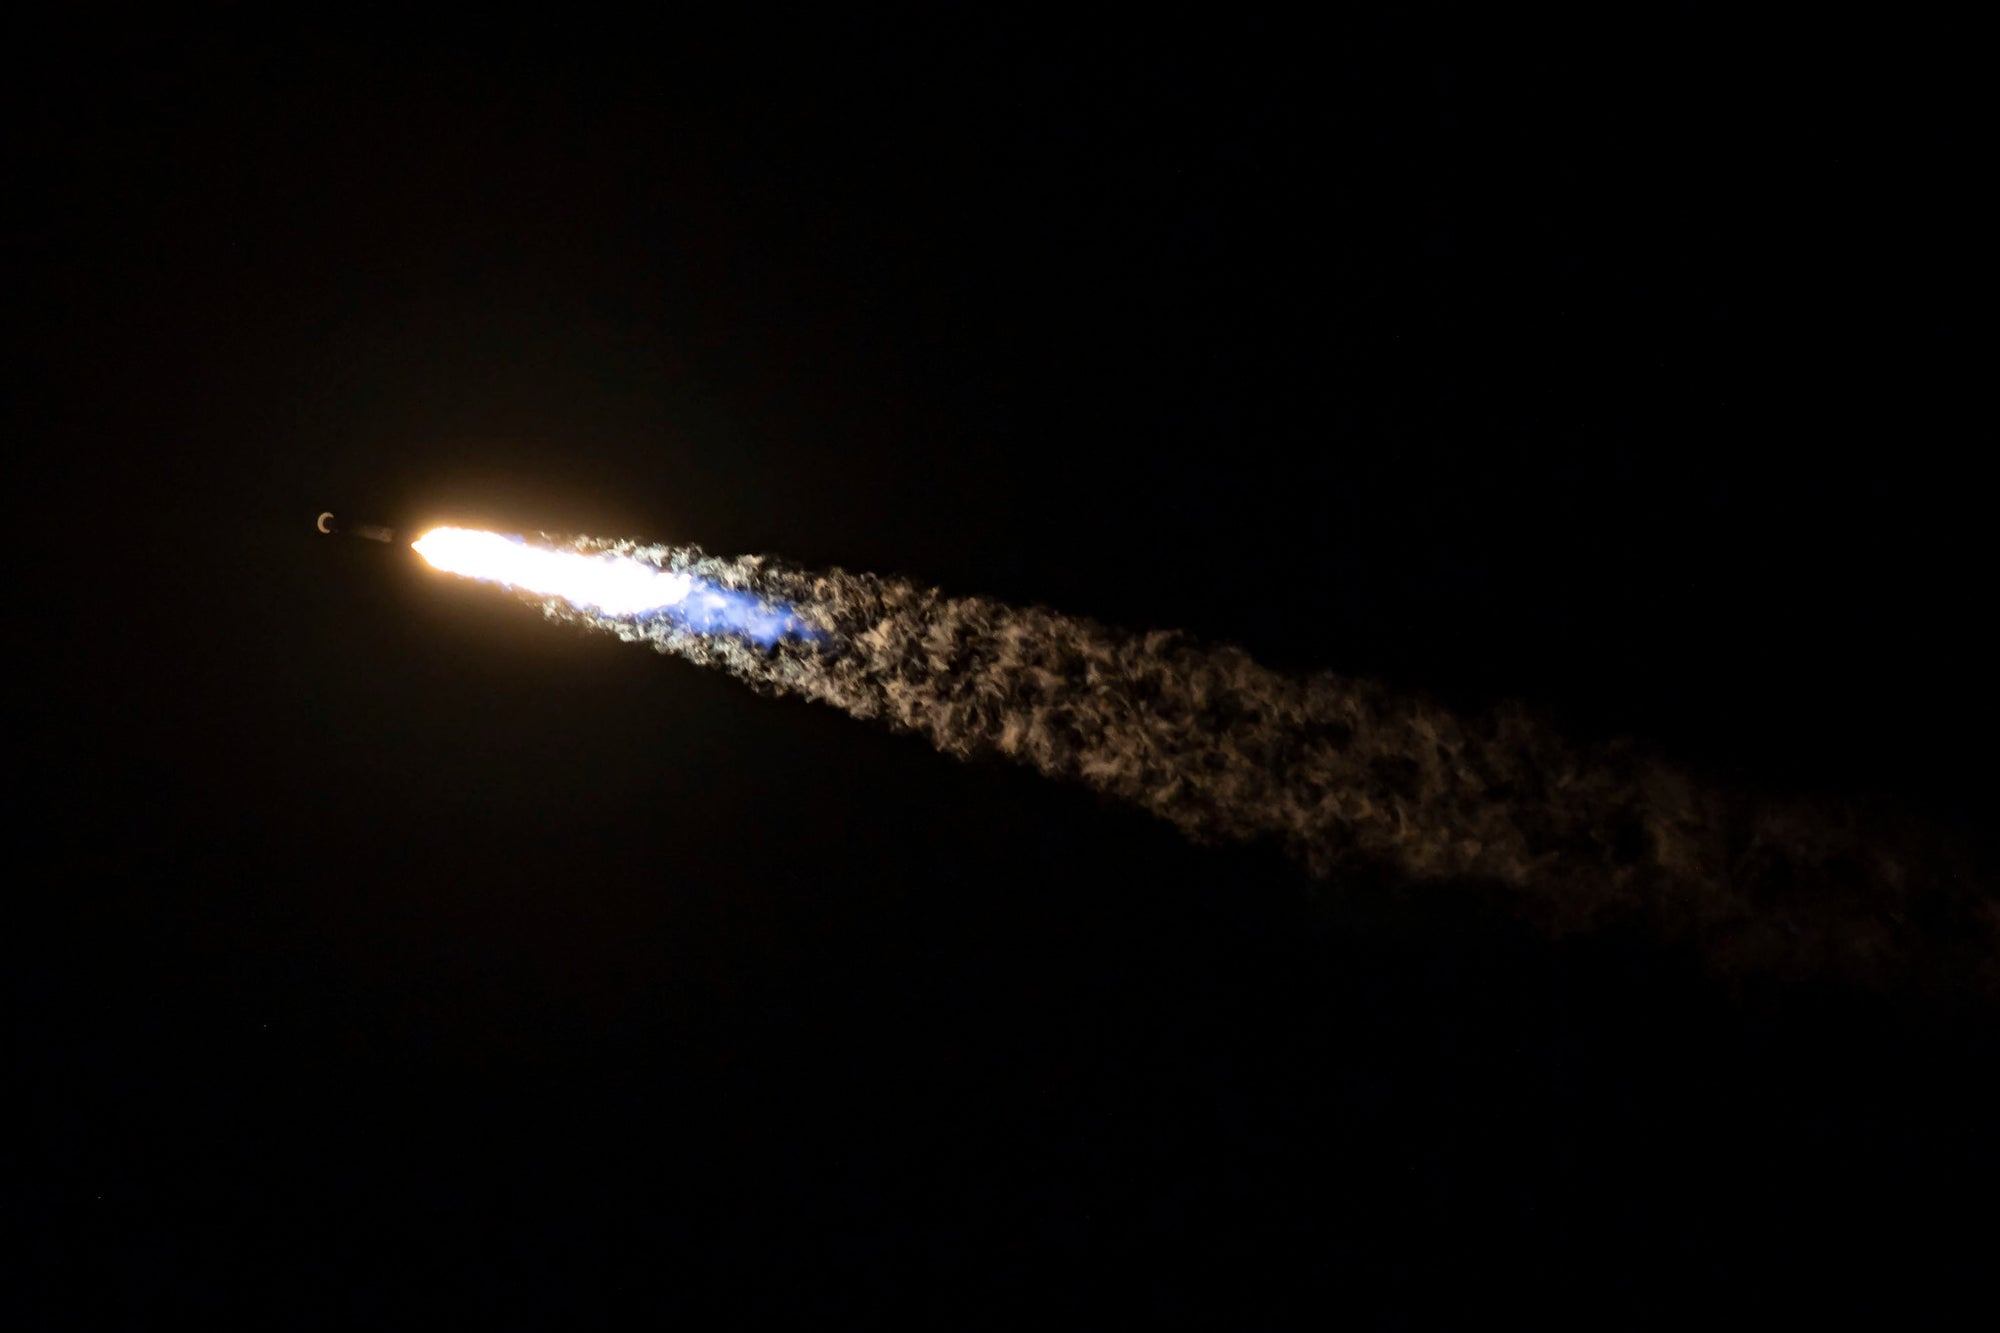 SpaceX's Previously Flown Falcon 9 Conducts Record-Breaking 10th Flight During Starlink Mission